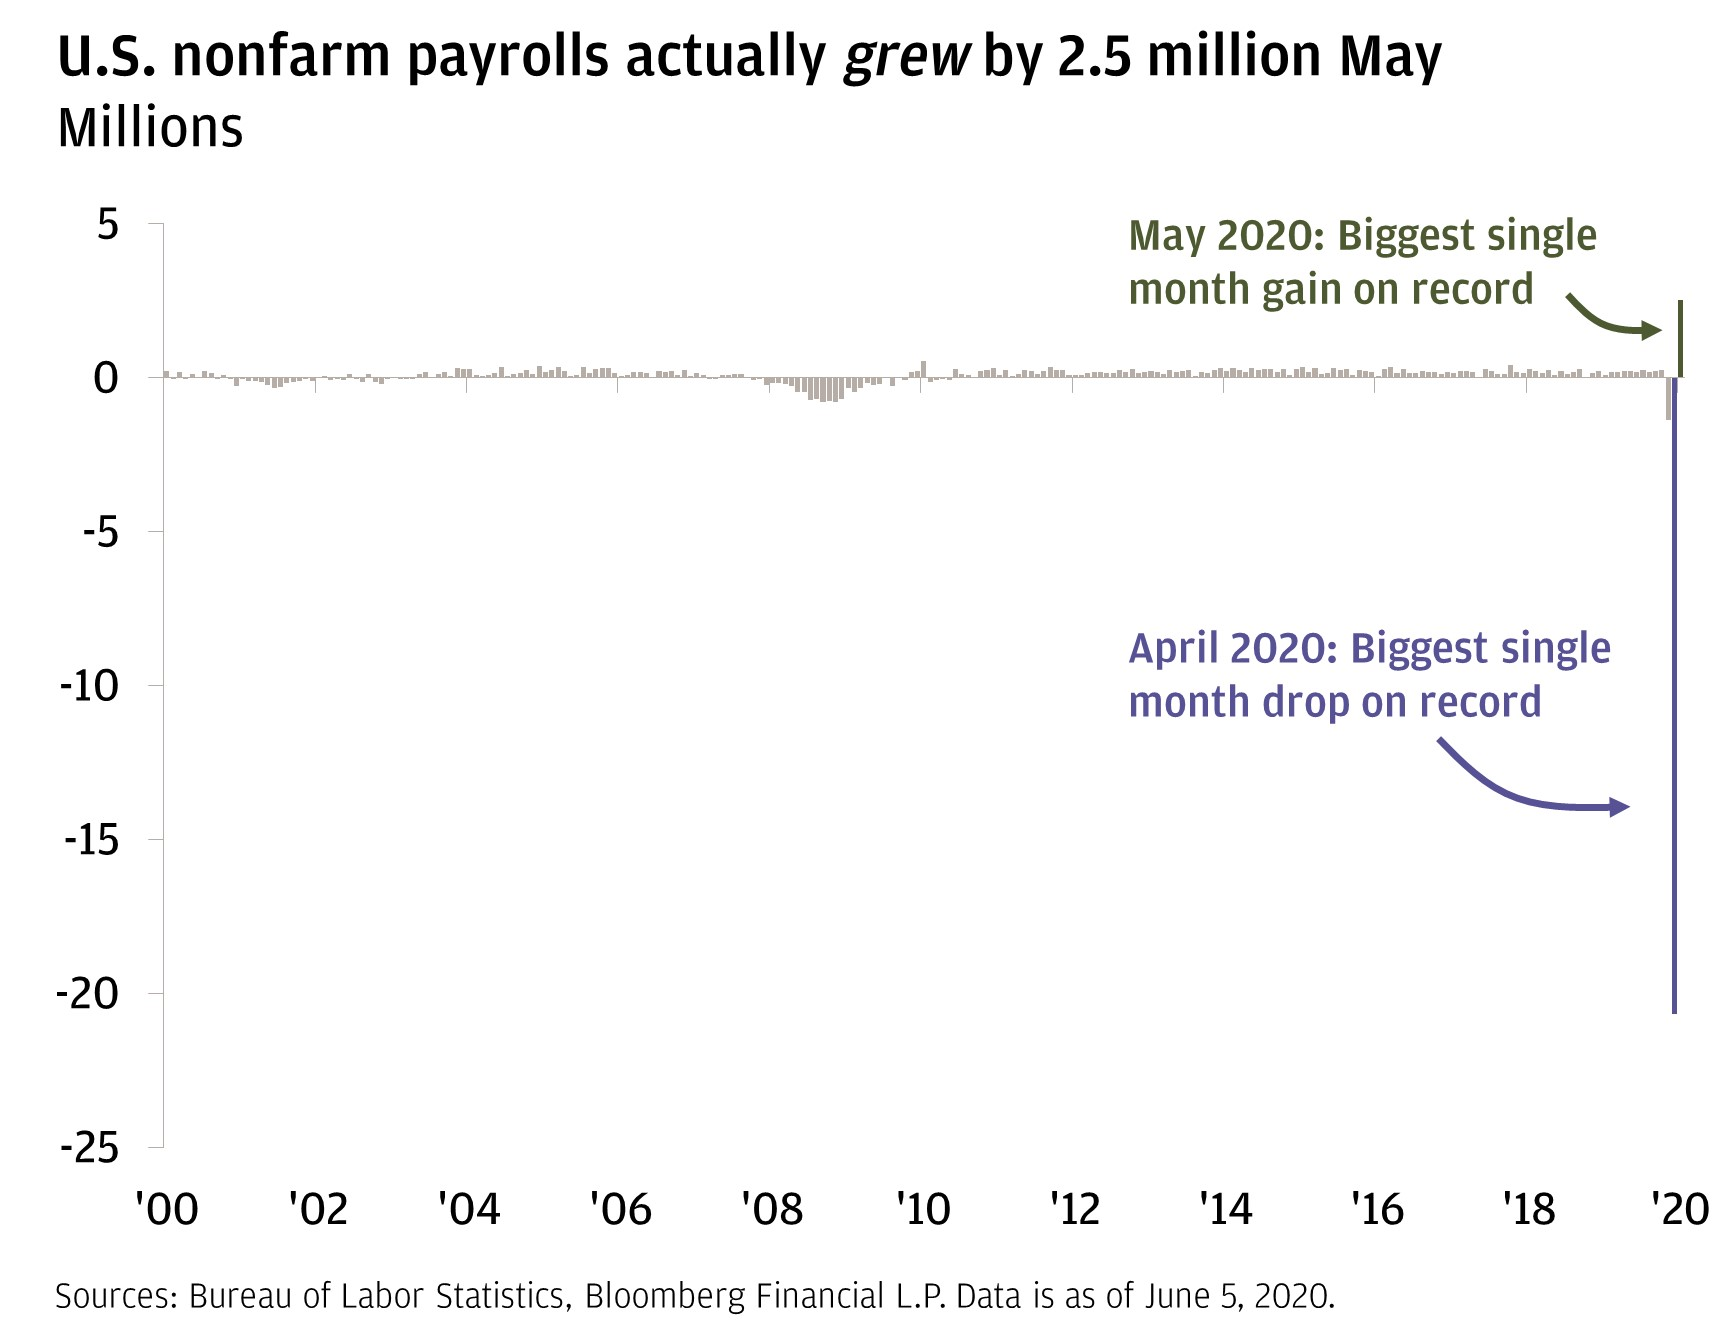 The line chart shows the U.S. nonfarm payrolls in millions from 2000 through June 5, 2020. It shows that the number has remained very consistent over time, until the largest single month drop on record in April and the largest single month gain on record in May.